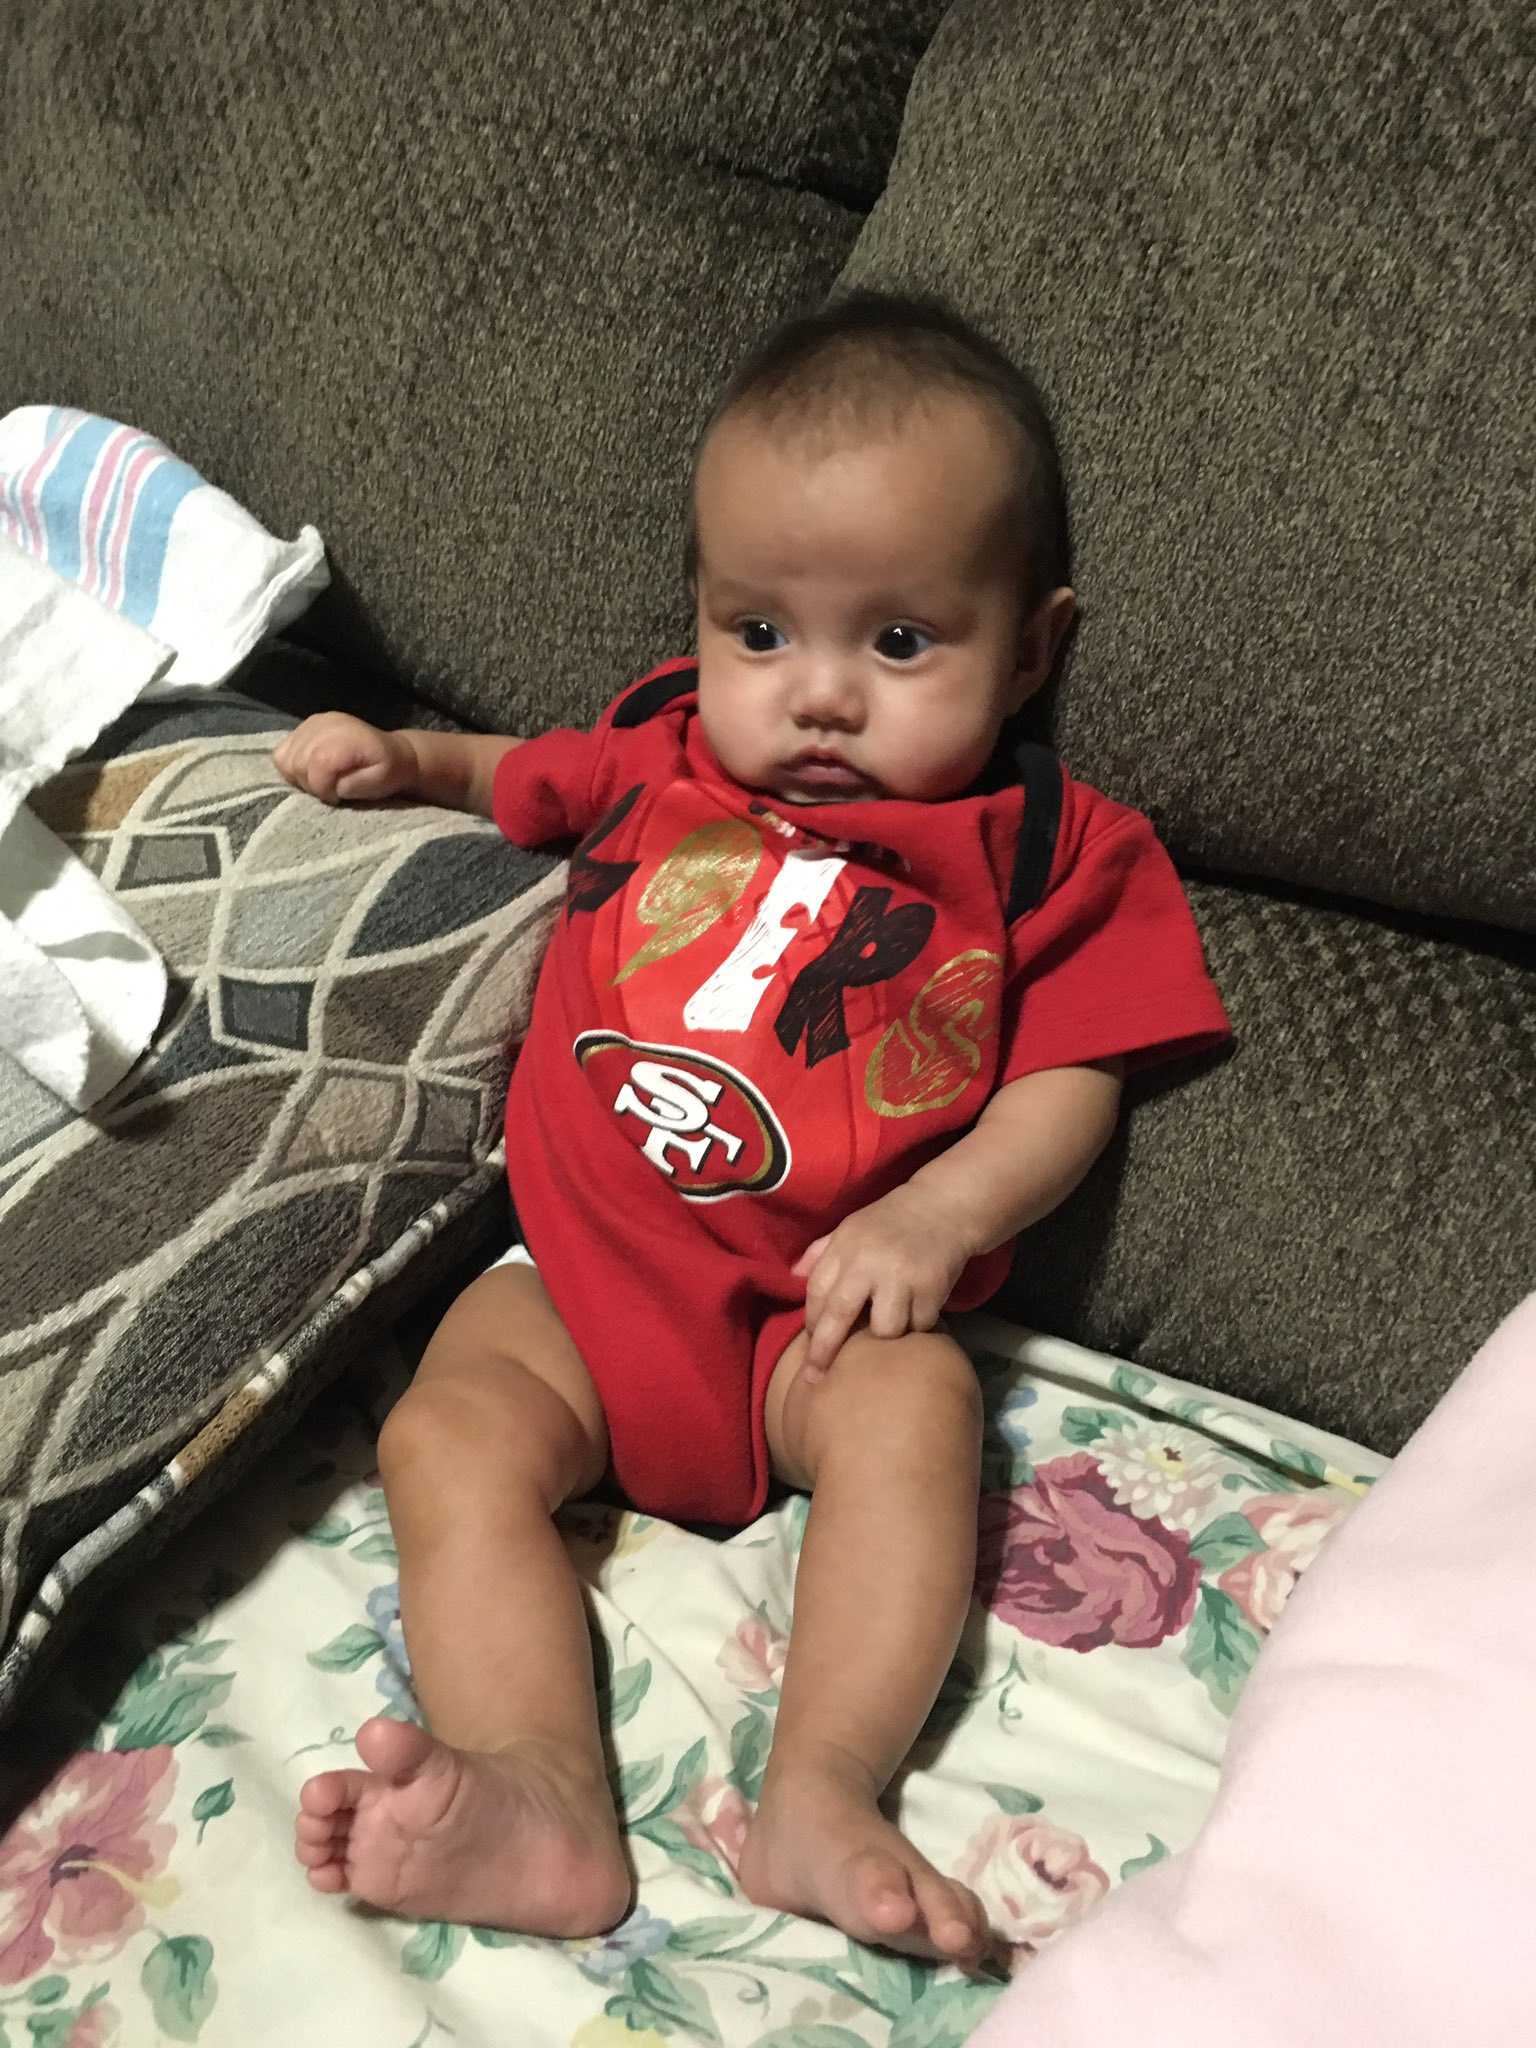 Lol my niece is patiently waiting for the @49ers game https://t.co/LiXUC3aygI